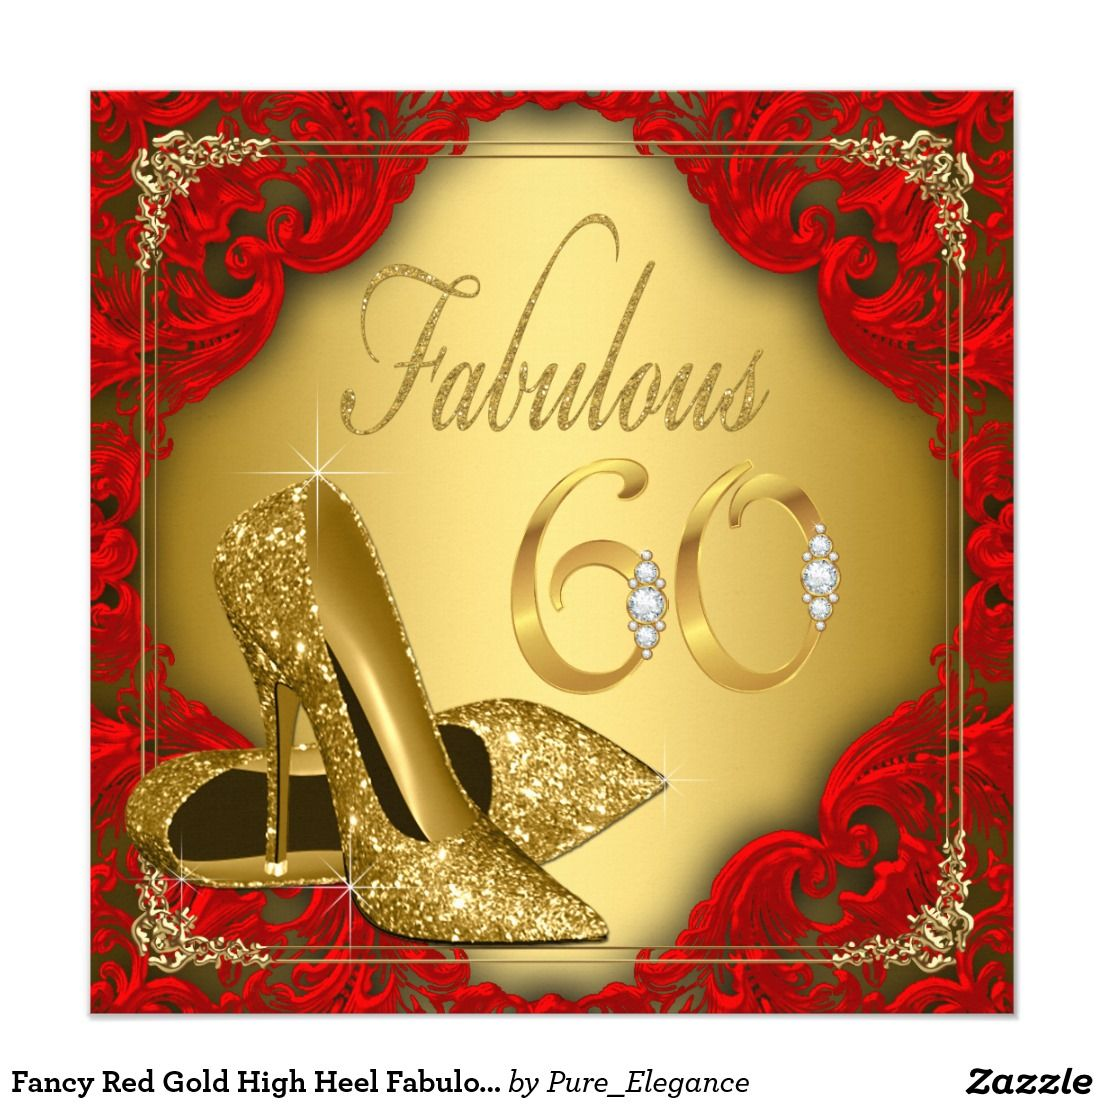 Fancy Red Gold High Heel Fabulous 60th Birthday Card | 60th birthday ...